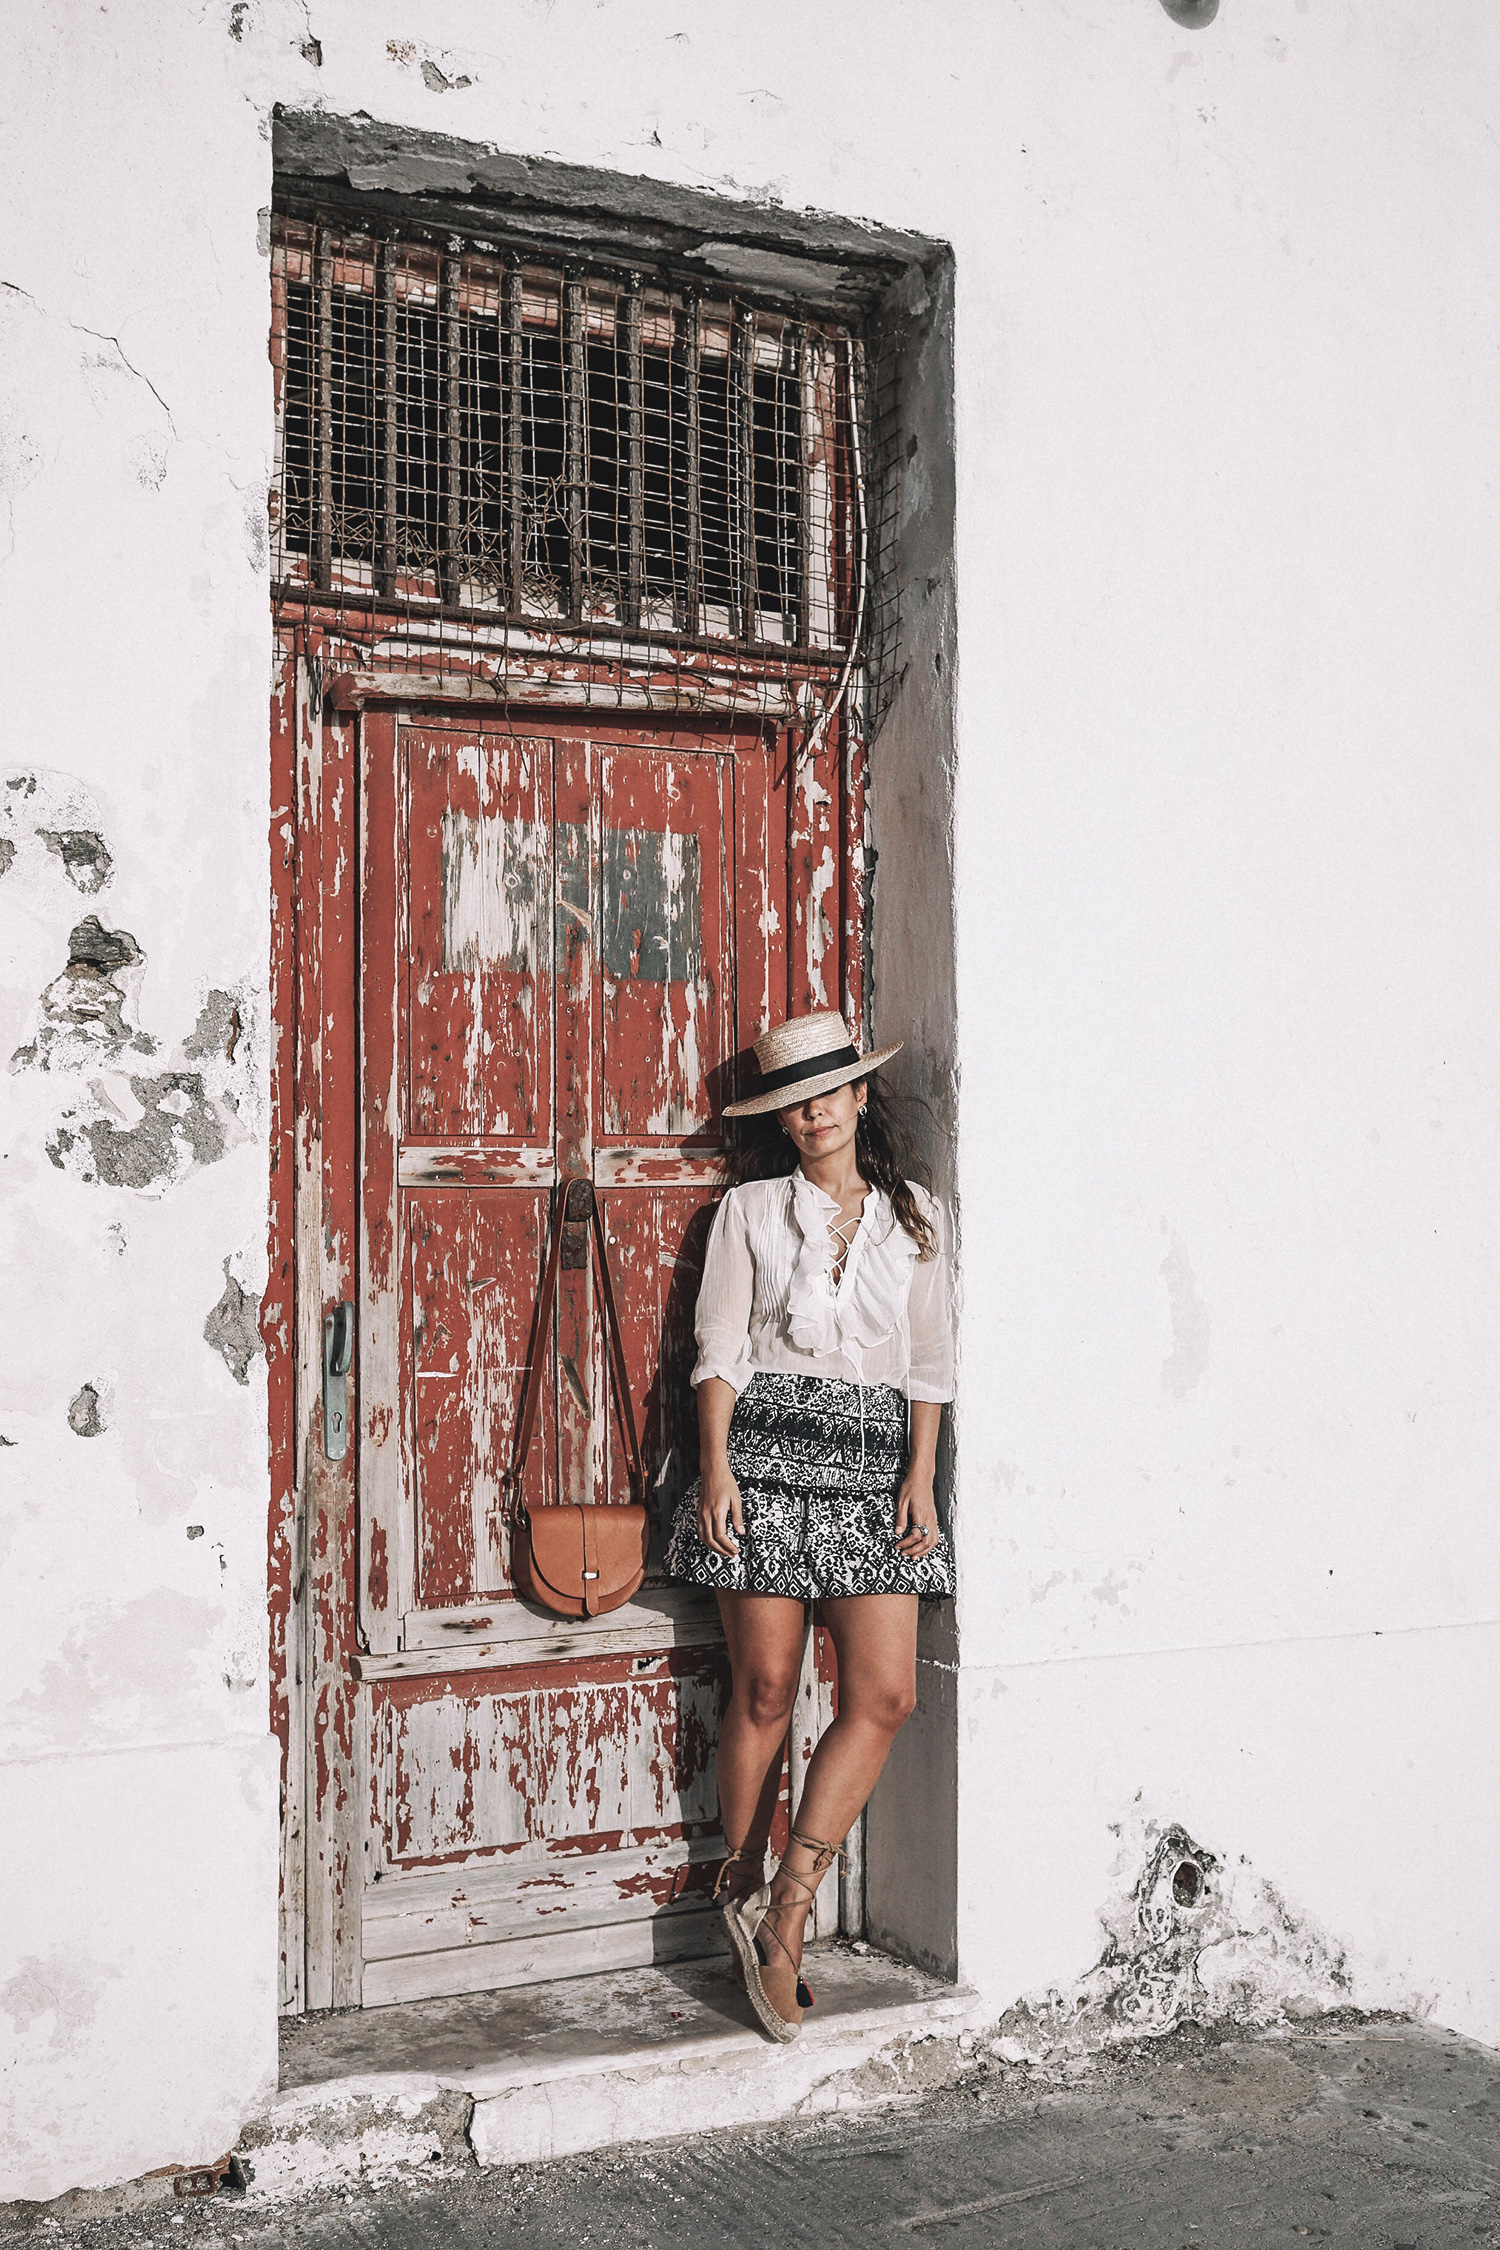 Lace_up_Blouse-Ralph_Lauren-Soludos_Espadrilles-Soludos_Escapes-Skirt-Straw_Hat-Canotier-Lack_Of_Color-Street_Style-Mykonos-Greece-Collage_Vintage-166